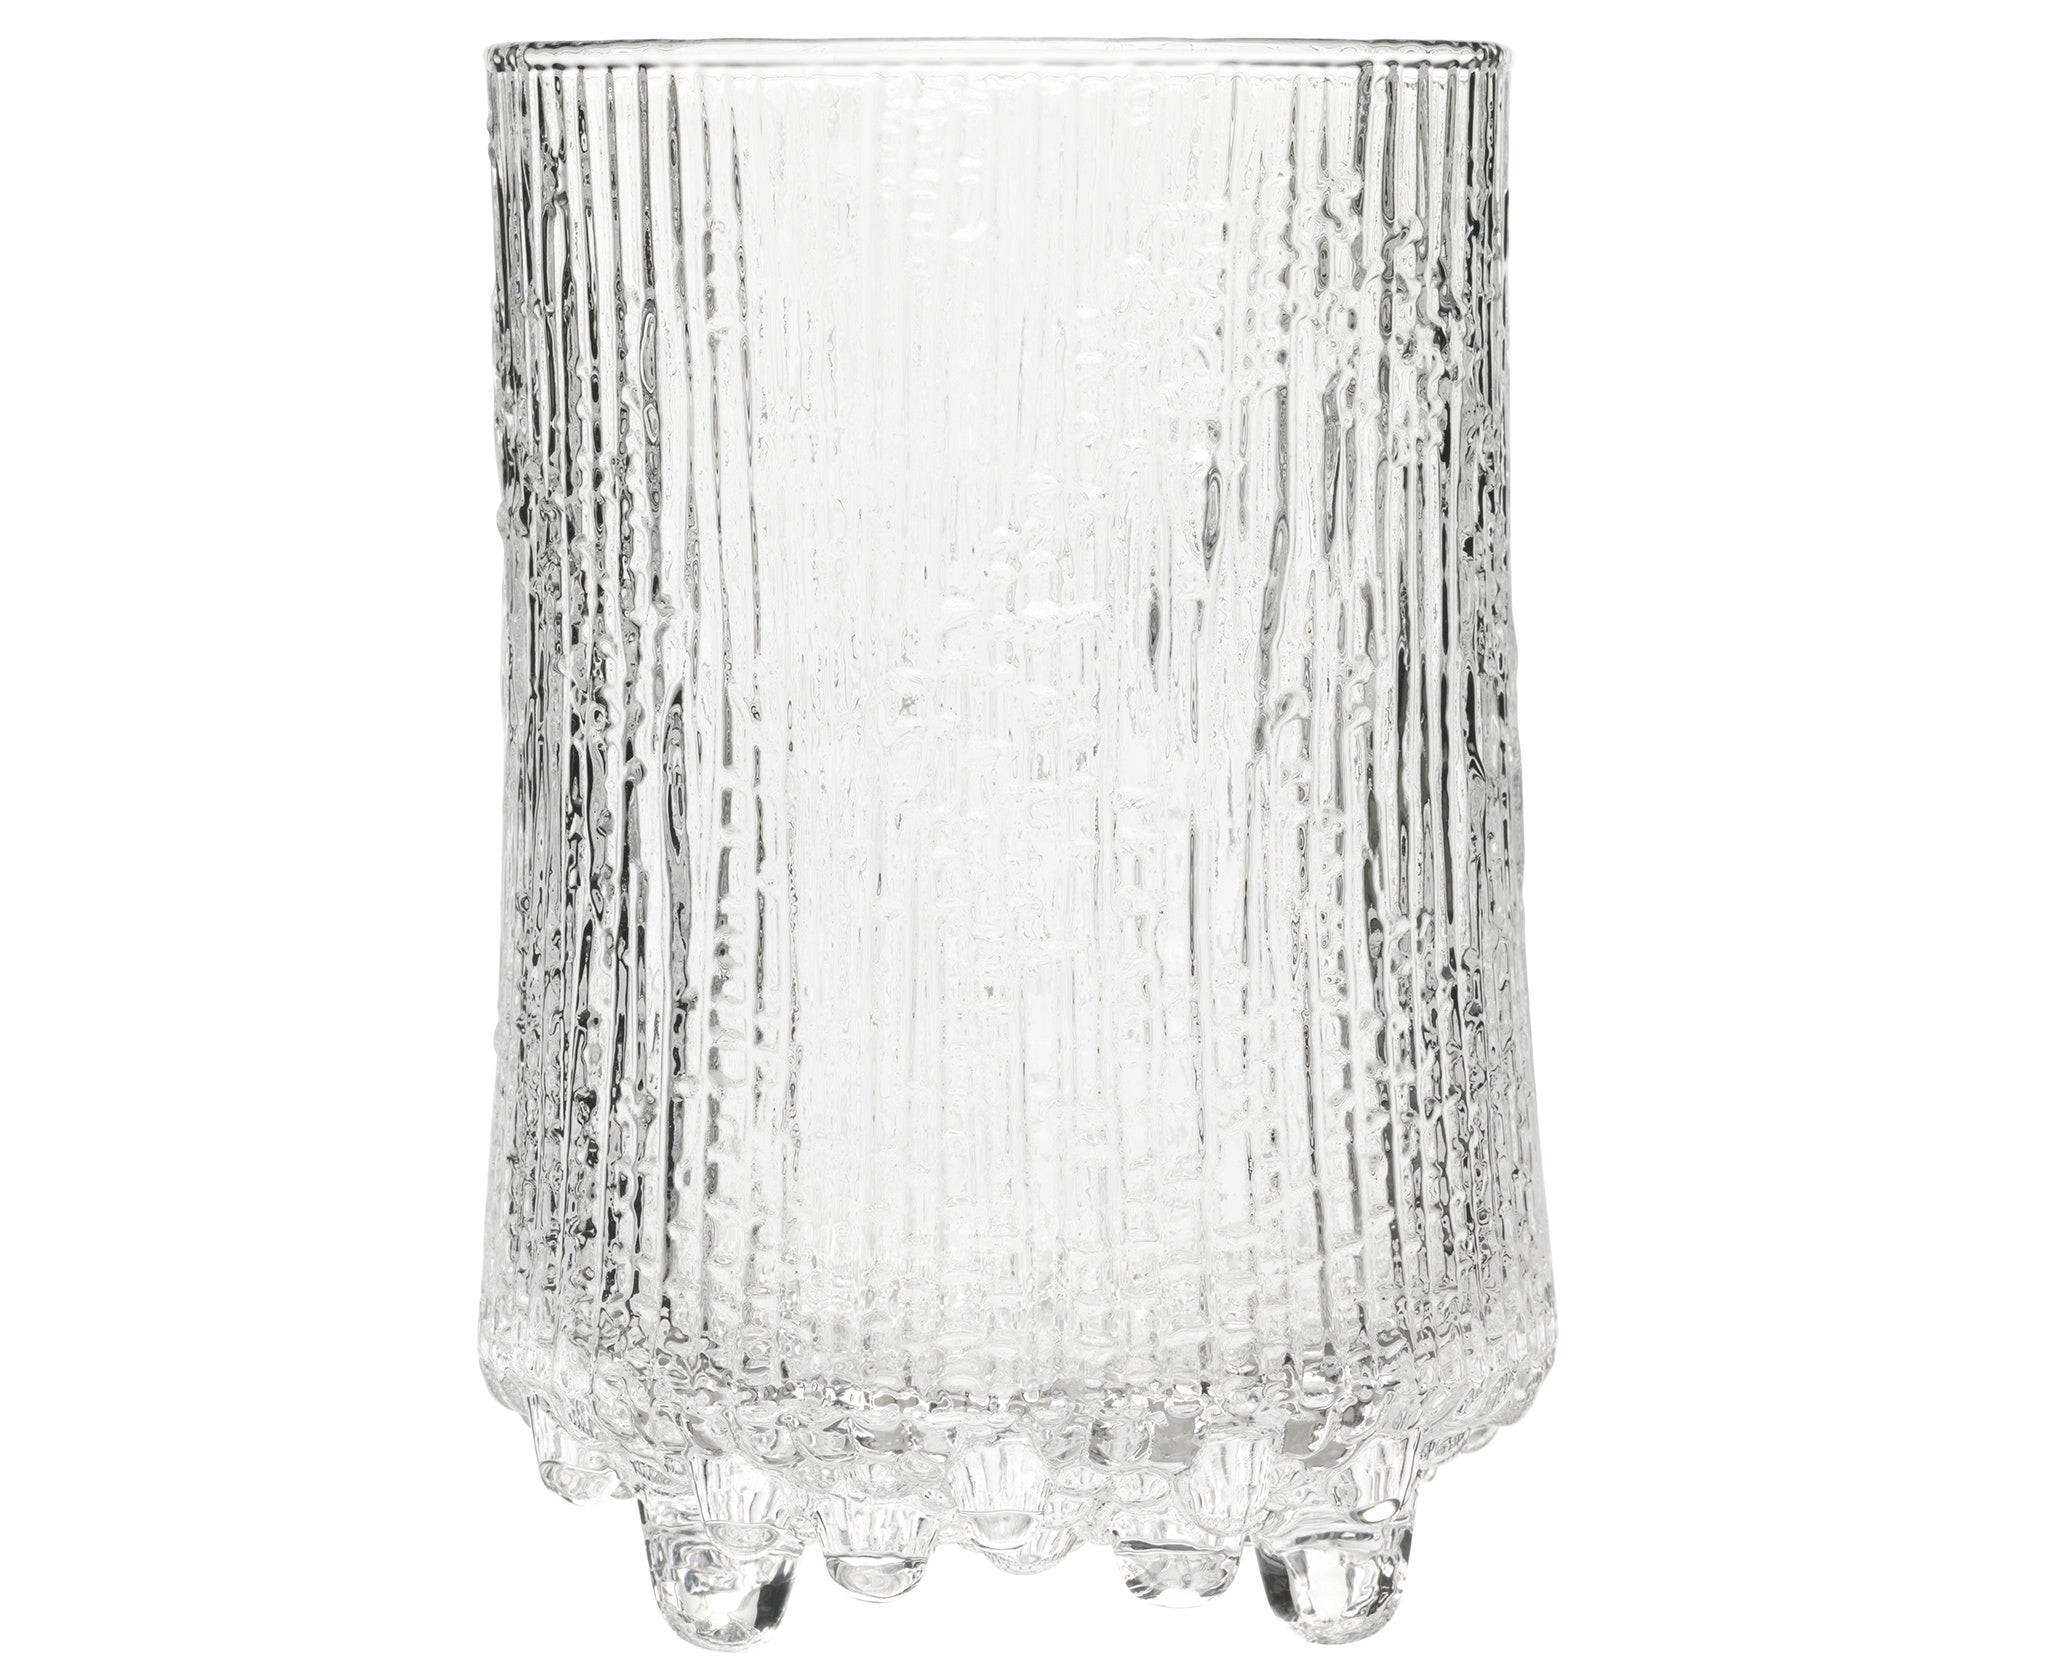 Iittala Ultima Thule High Ball Set 2